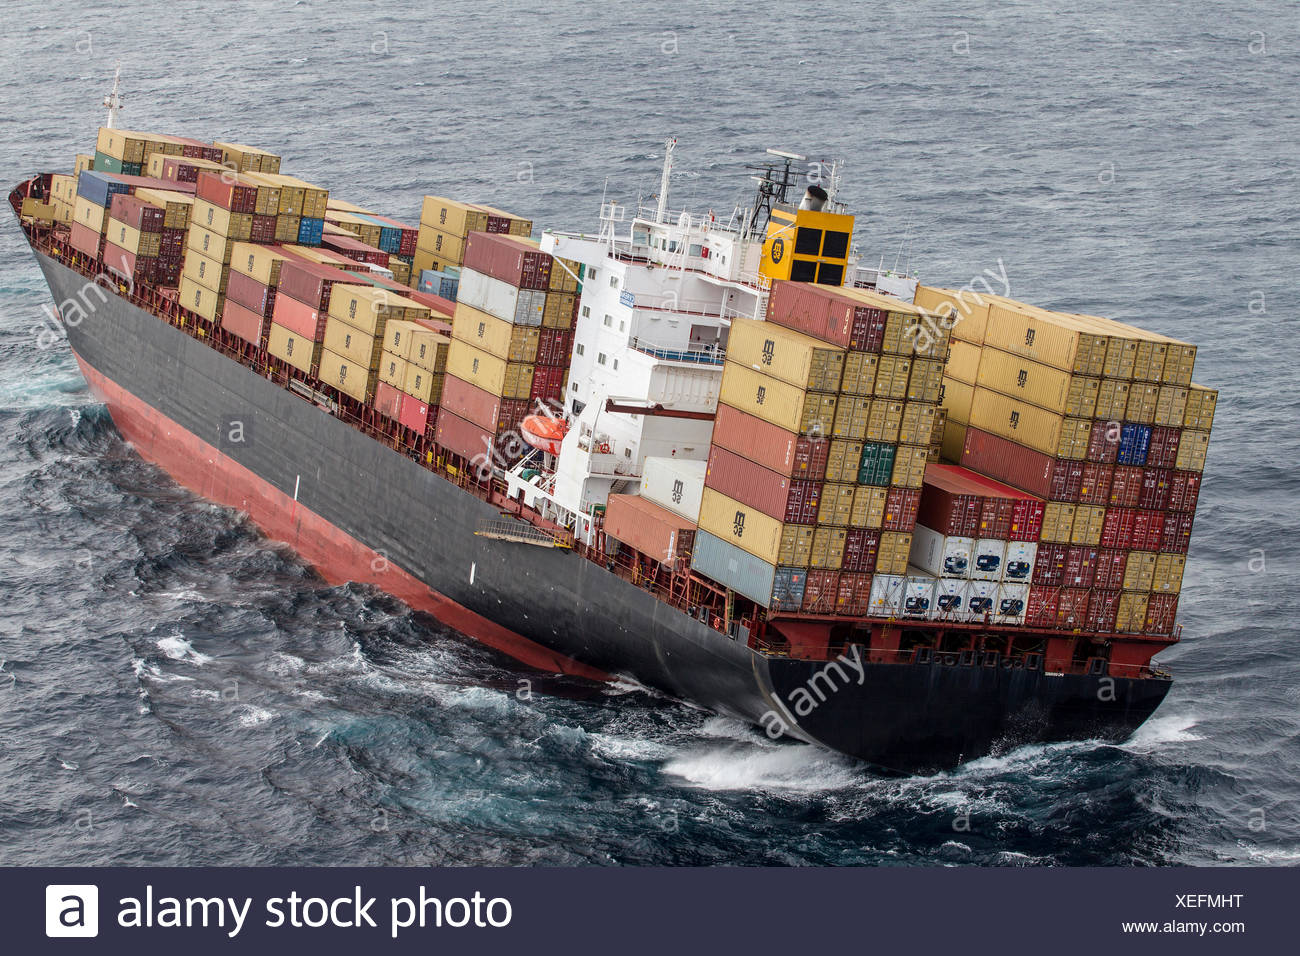 Container ship, MV Rena, approximately 14 hours after becoming grounded on Astrolabe Reef, off of the Port of Tauranga, Bay of P - Stock Image